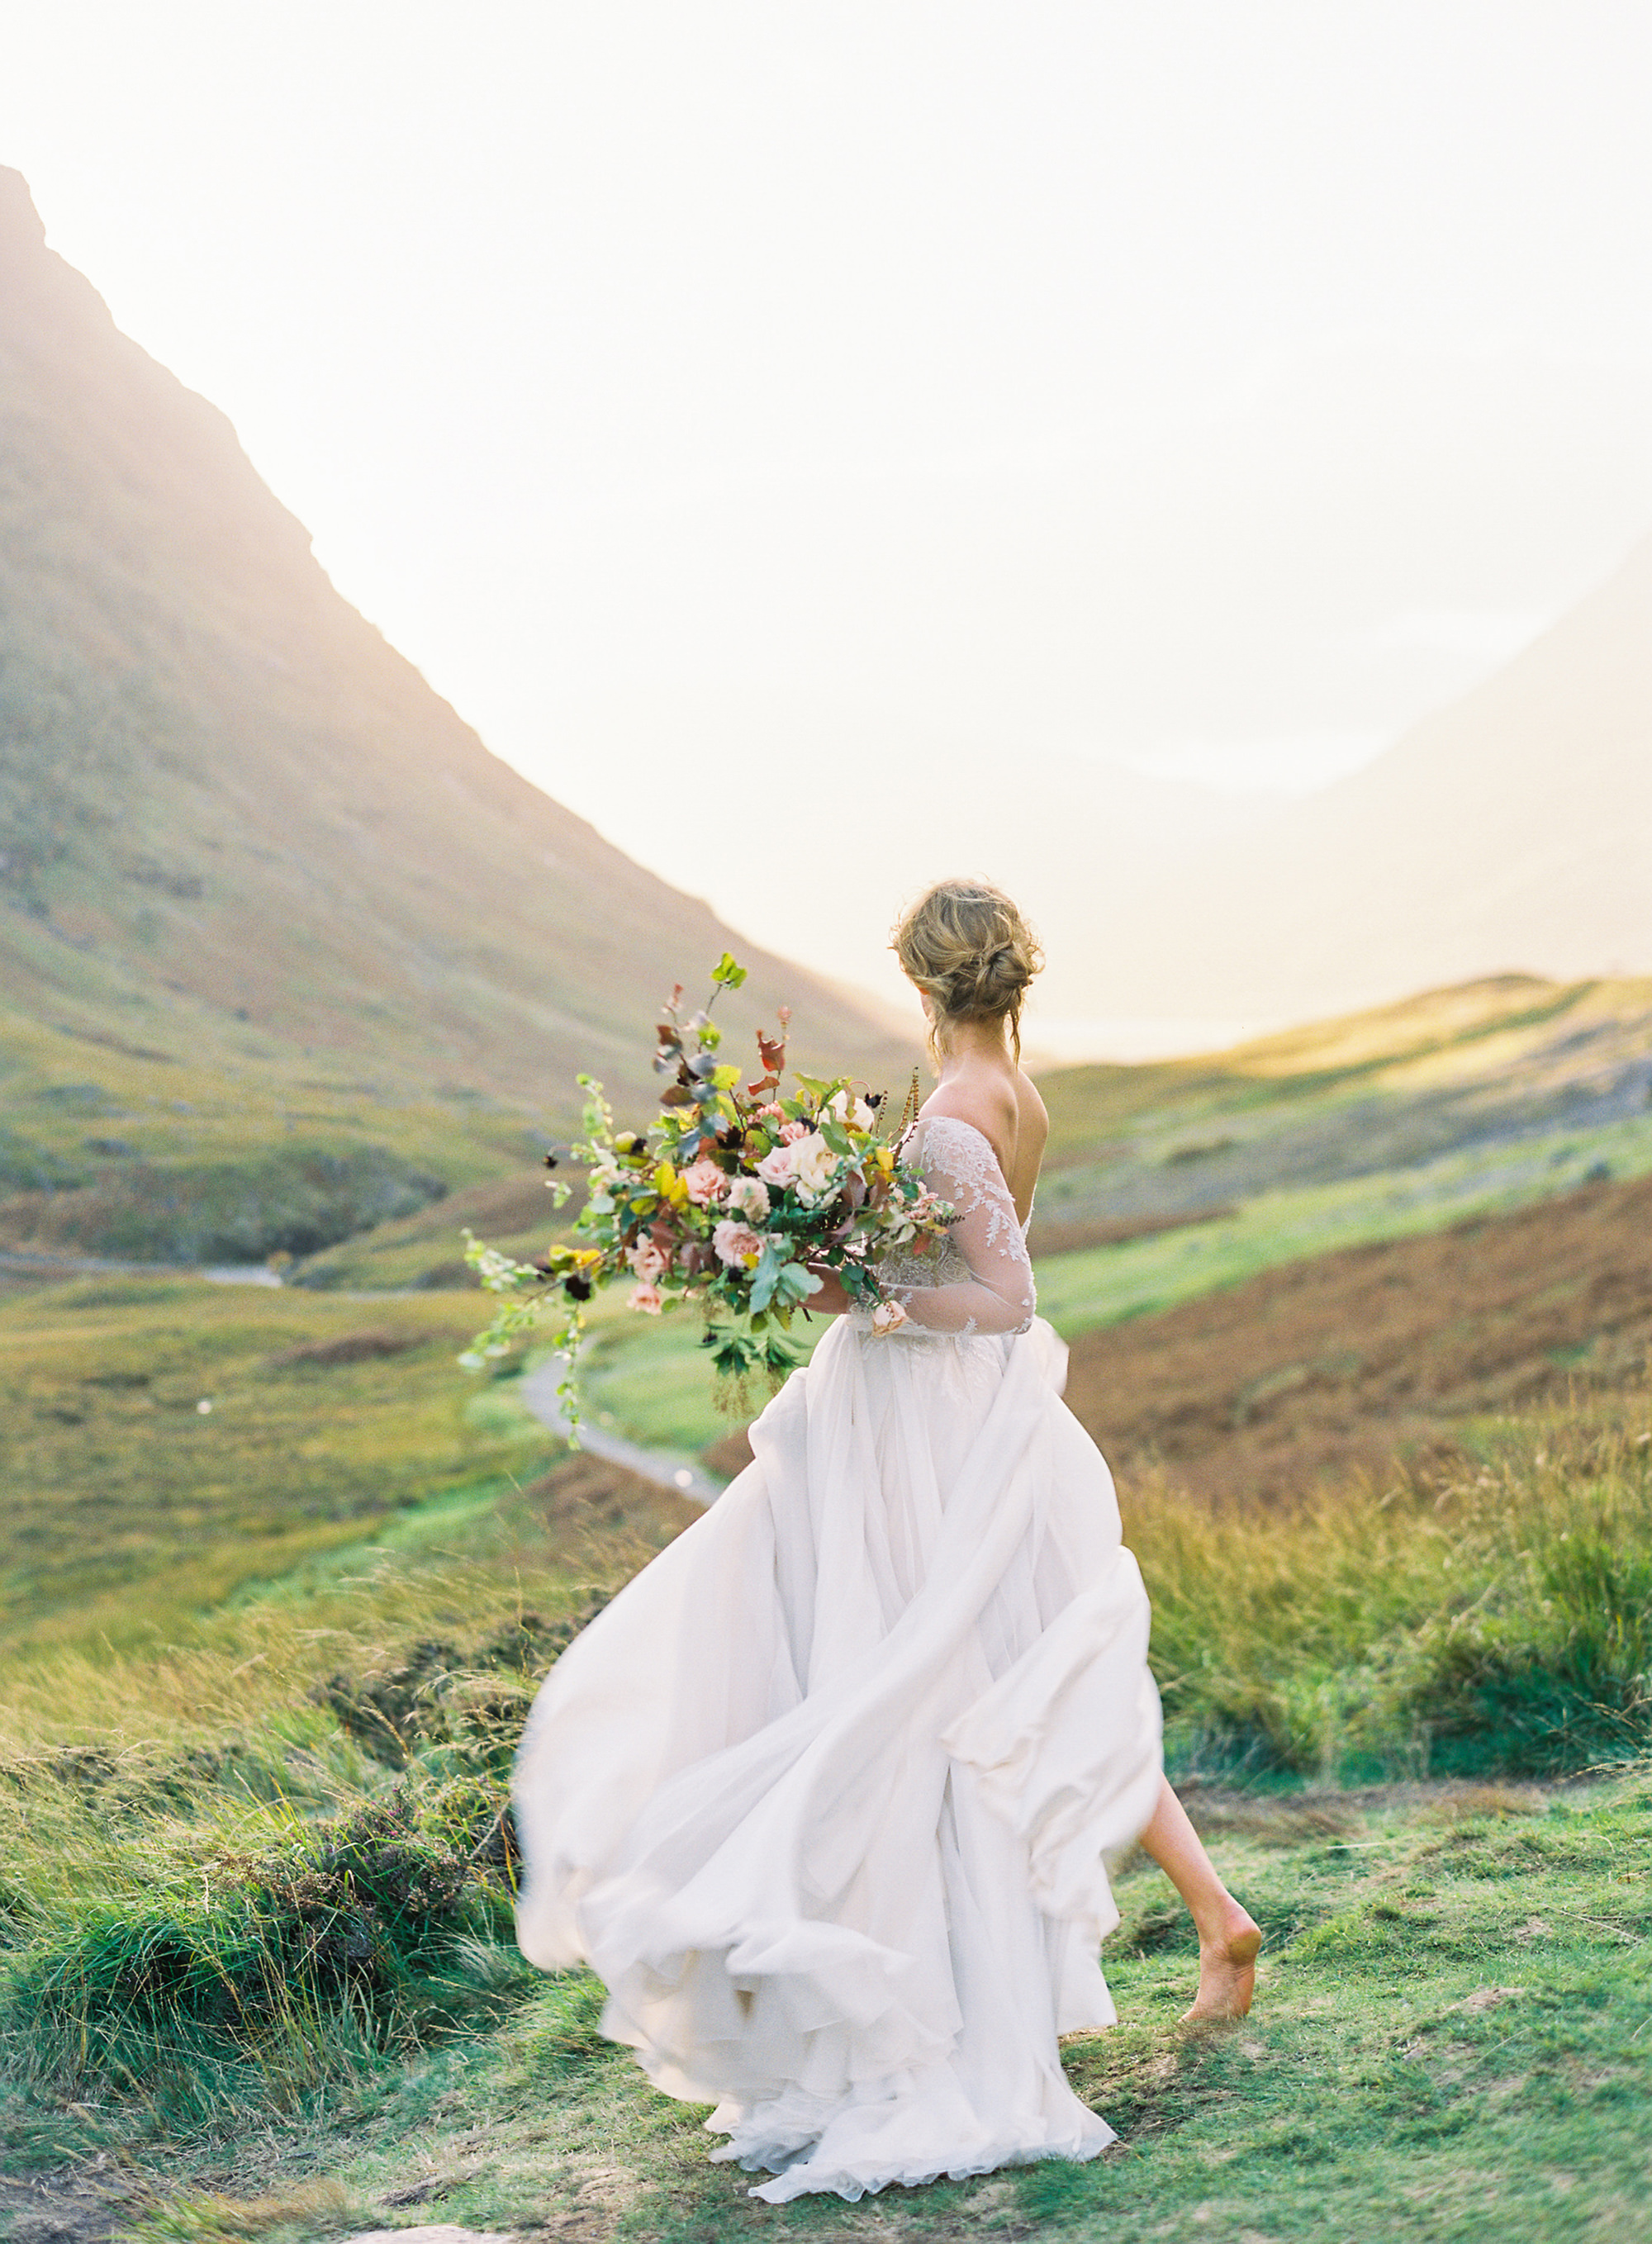 Barefoot bride in Scottish landscape with large colorful bouquet - photo by Jen Huang